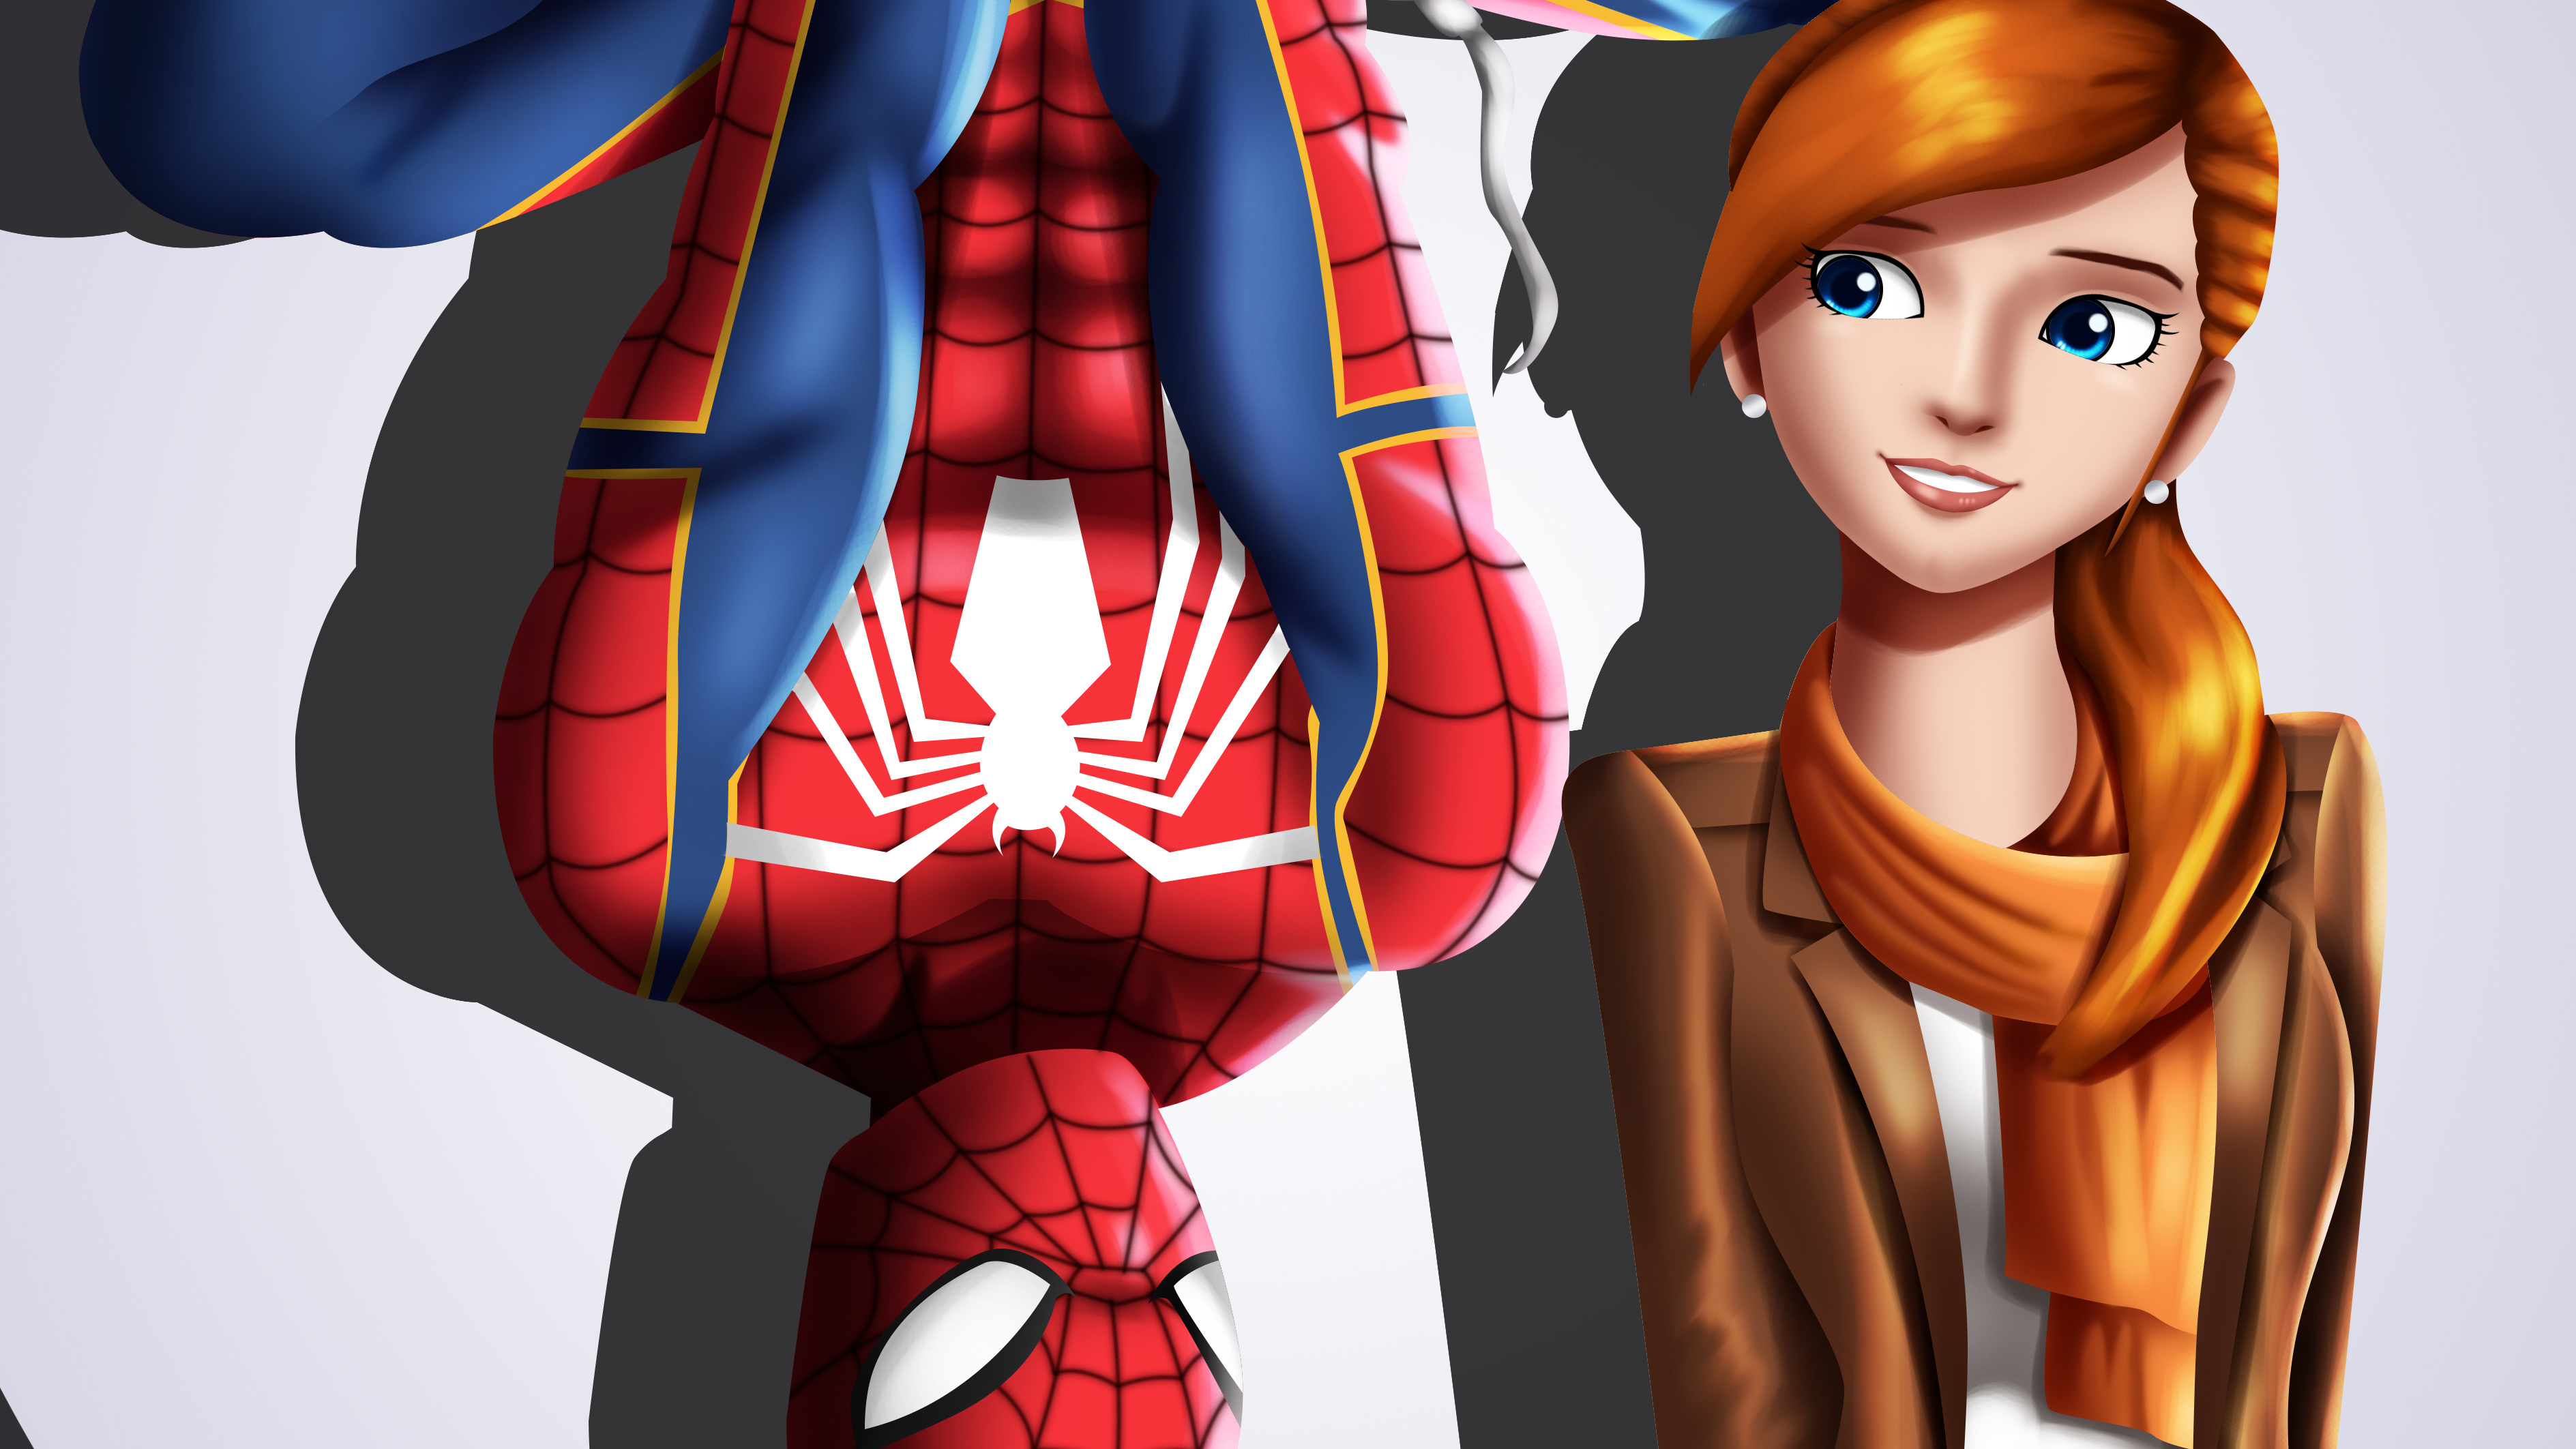 Spider Man And Mary Jane Watson Hd Superheroes 4k Wallpapers